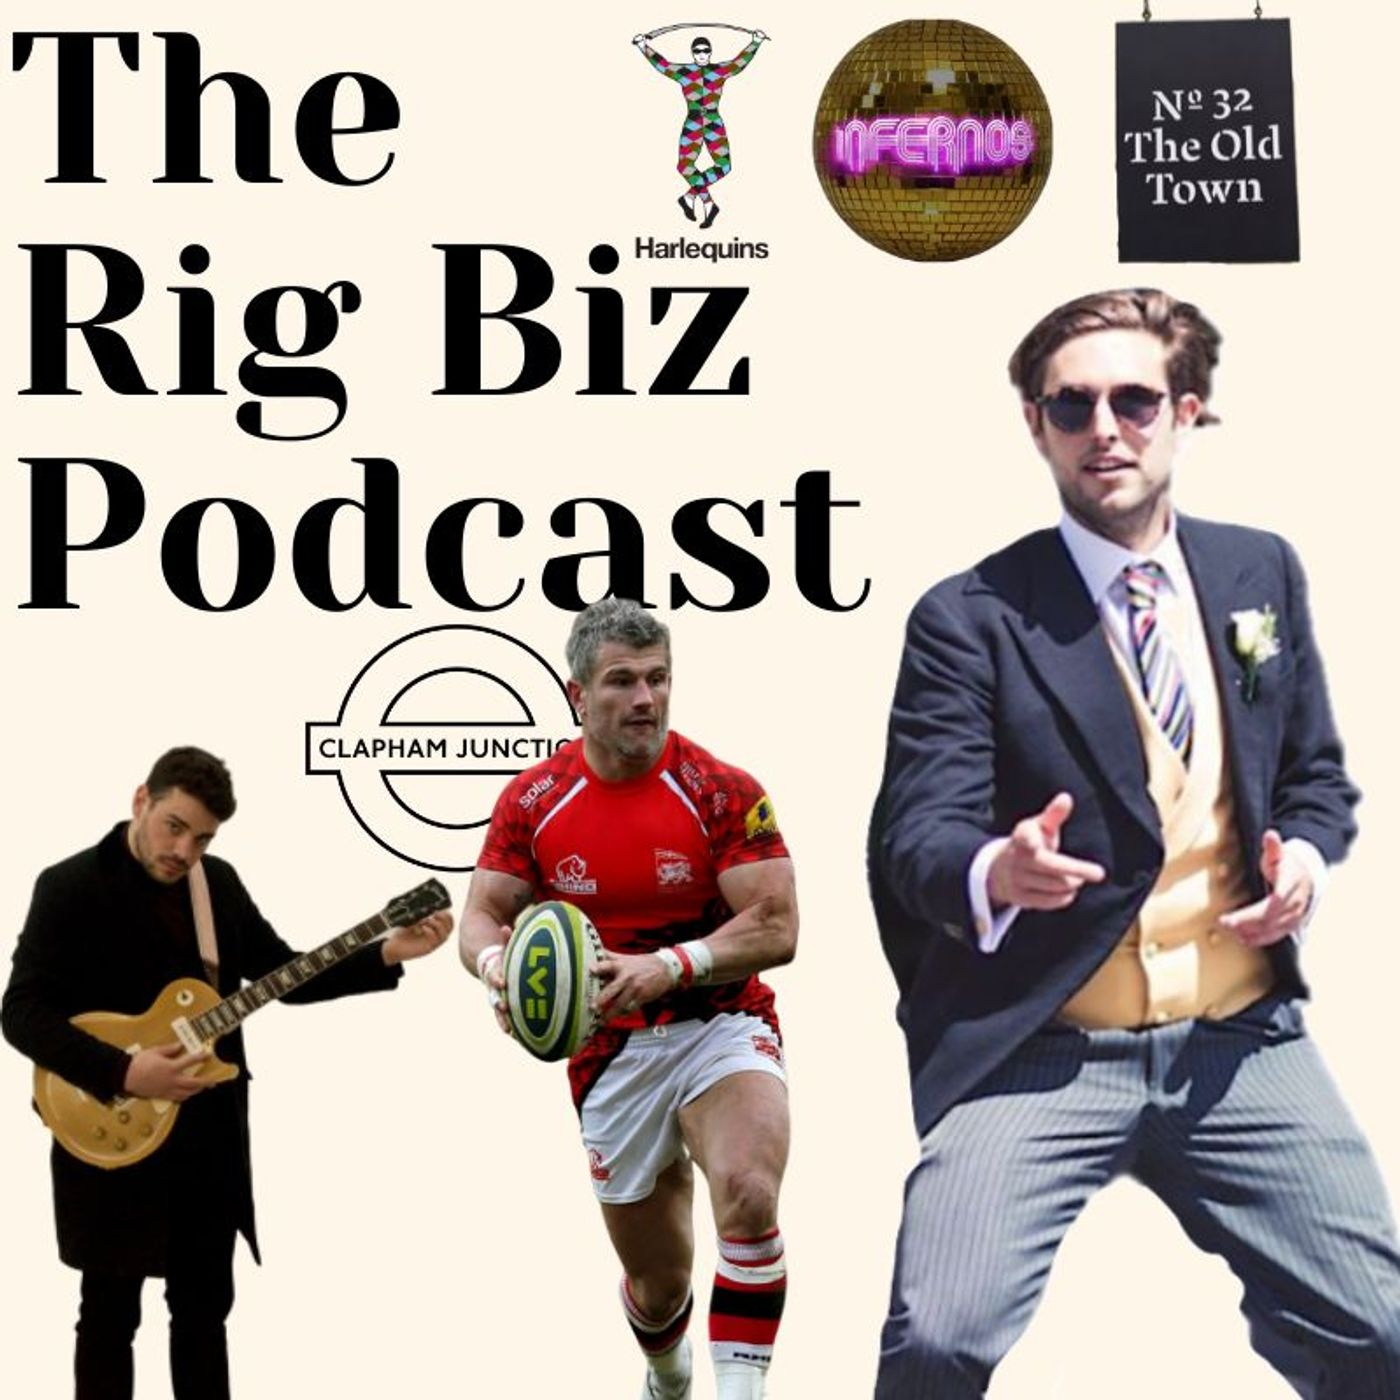 The Rig Biz - Episode 6 - Tom May Interview - Blazers Pod Debut - Nights out with Sonny Bill